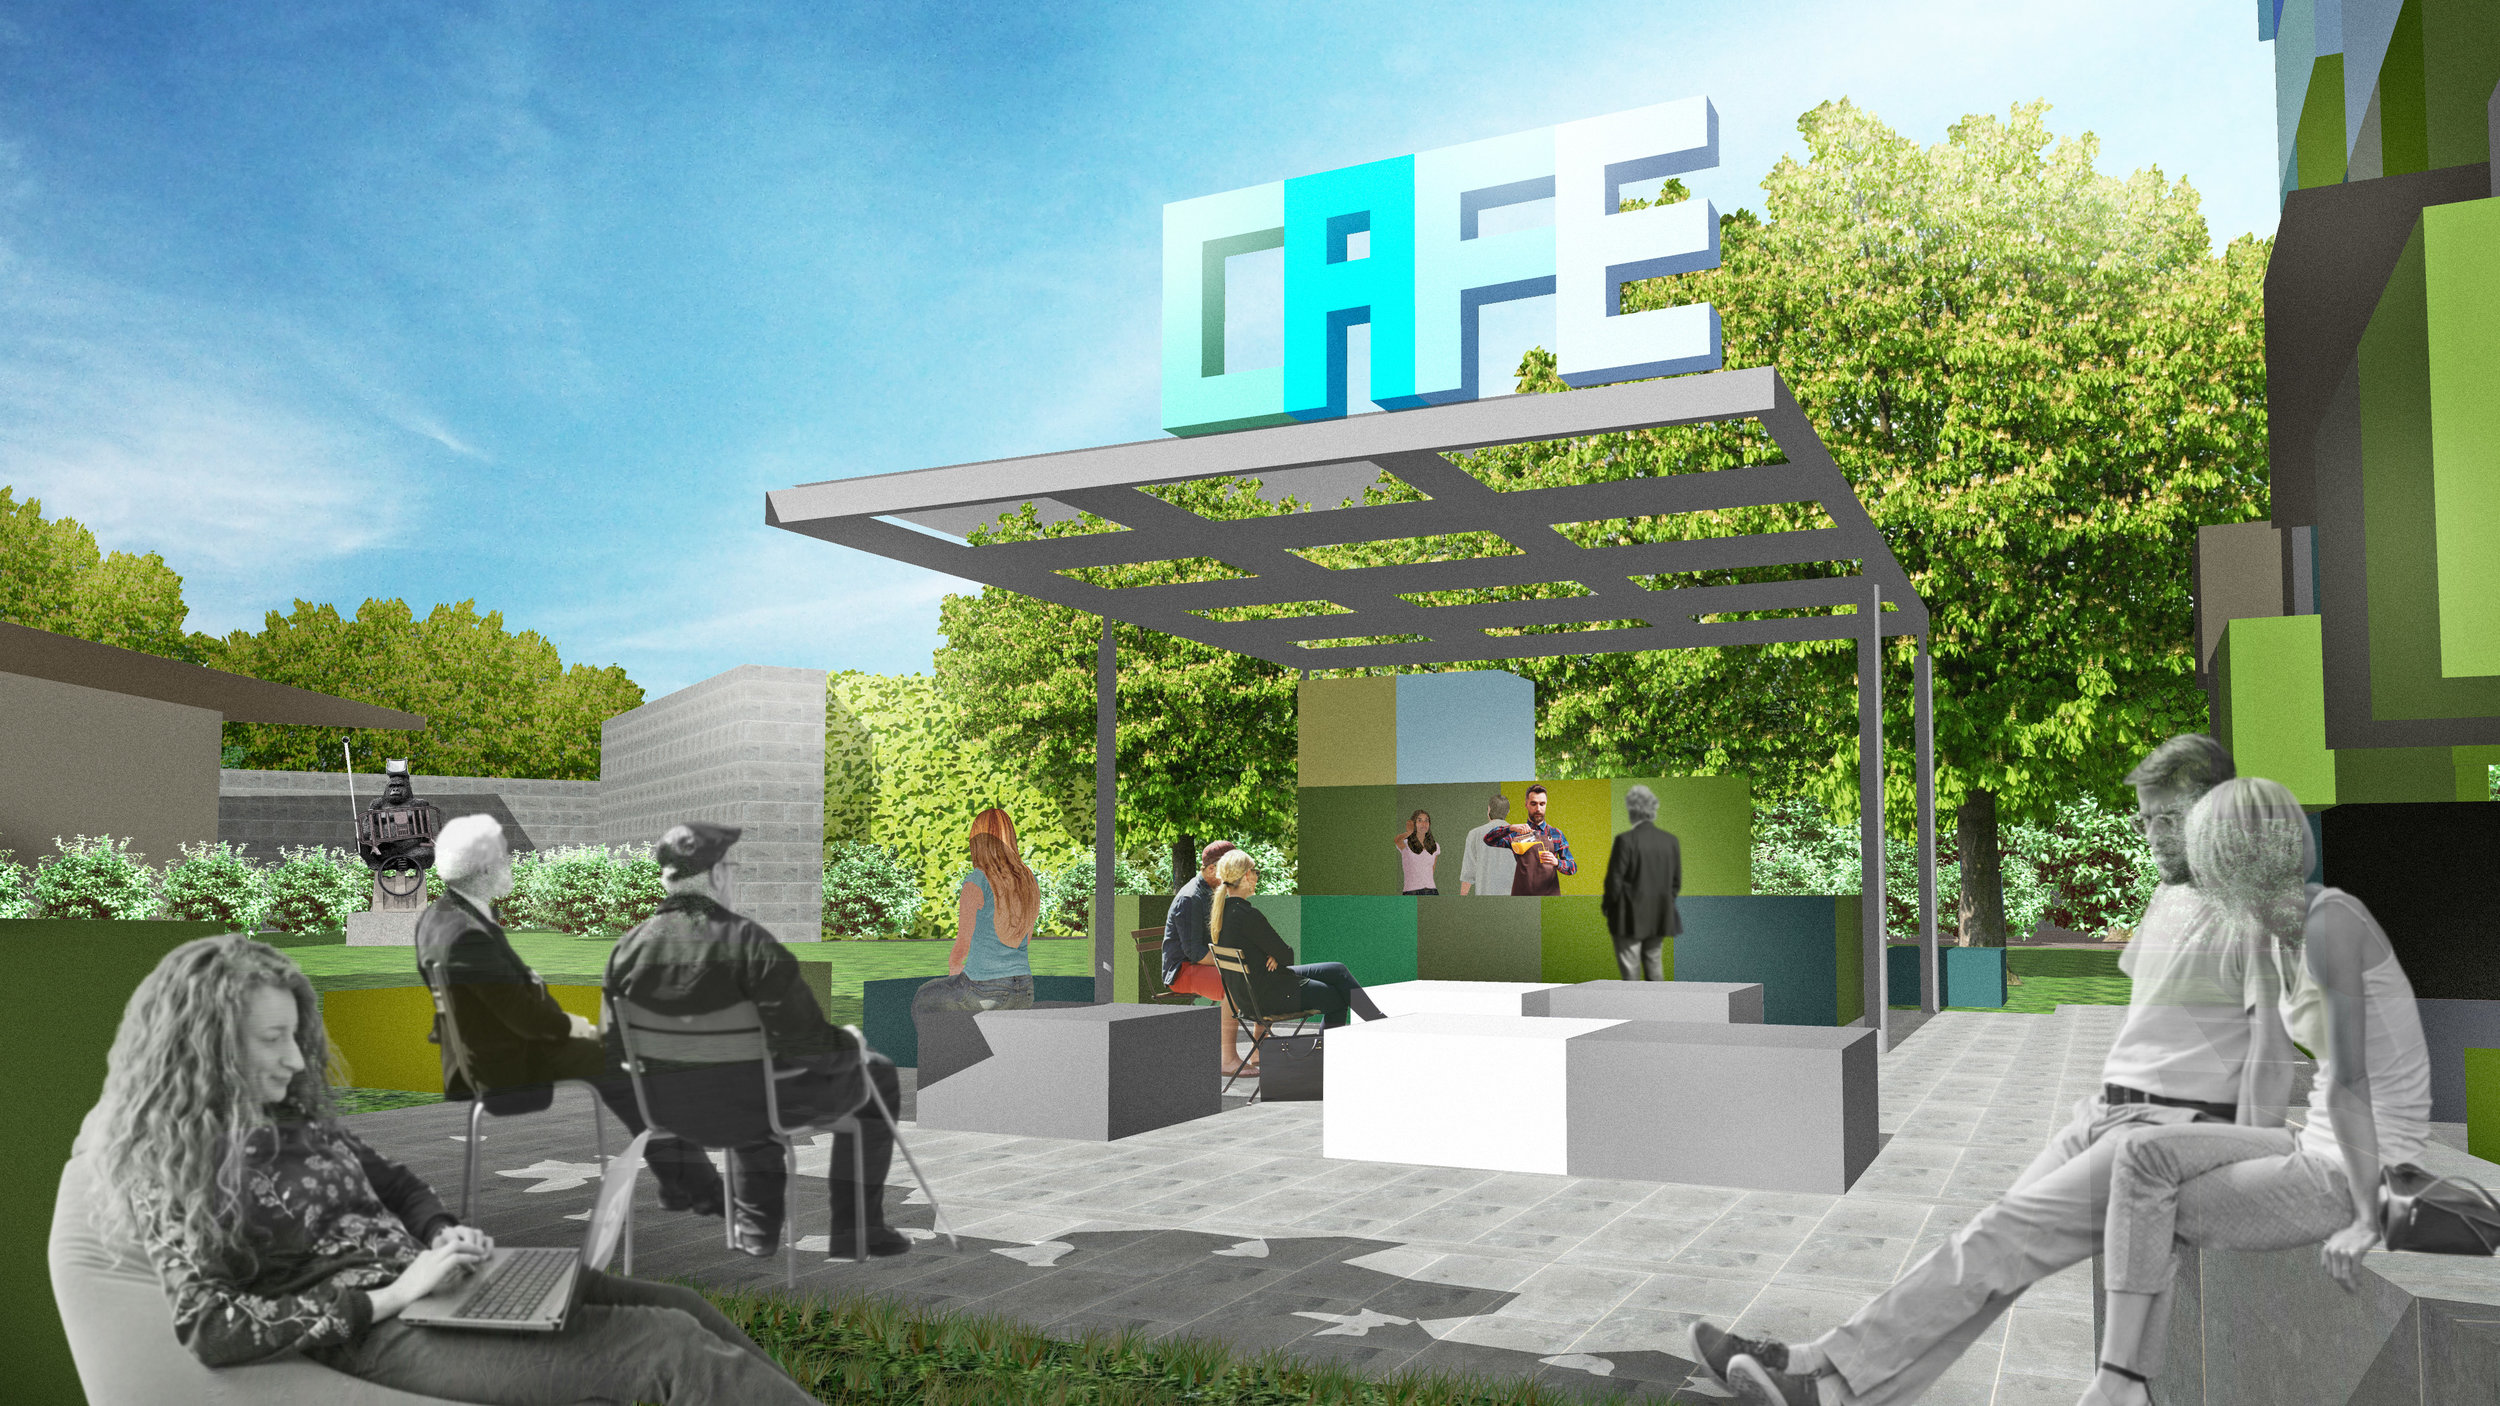 NGV Competition 2019 - Concept design by Mike Edwards Architecture - one of several concept images - view of cafe